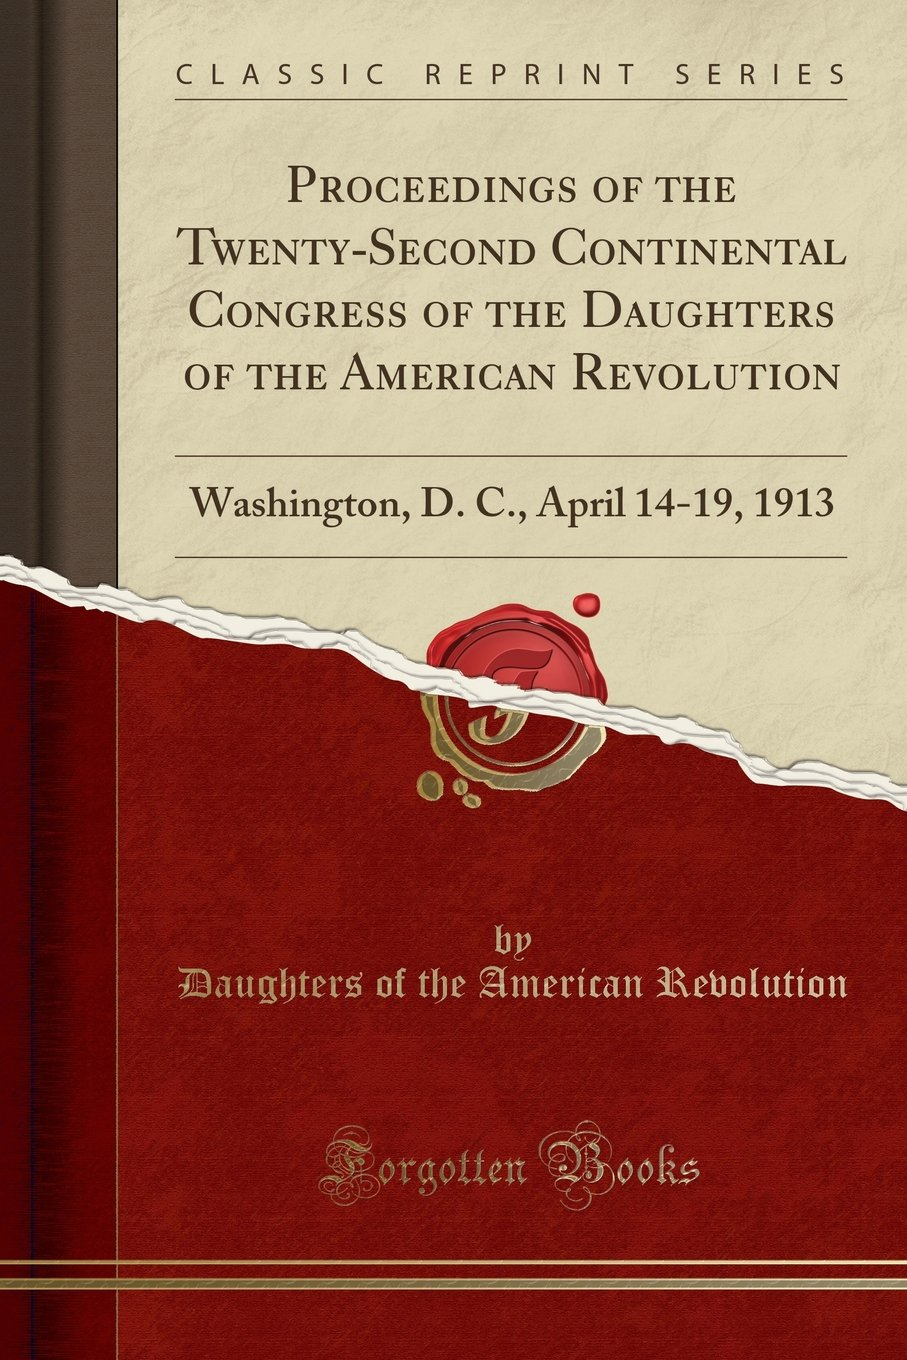 Download Proceedings of the Twenty-Second Continental Congress of the Daughters of the American Revolution: Washington, D. C., April 14-19, 1913 (Classic Reprint) PDF